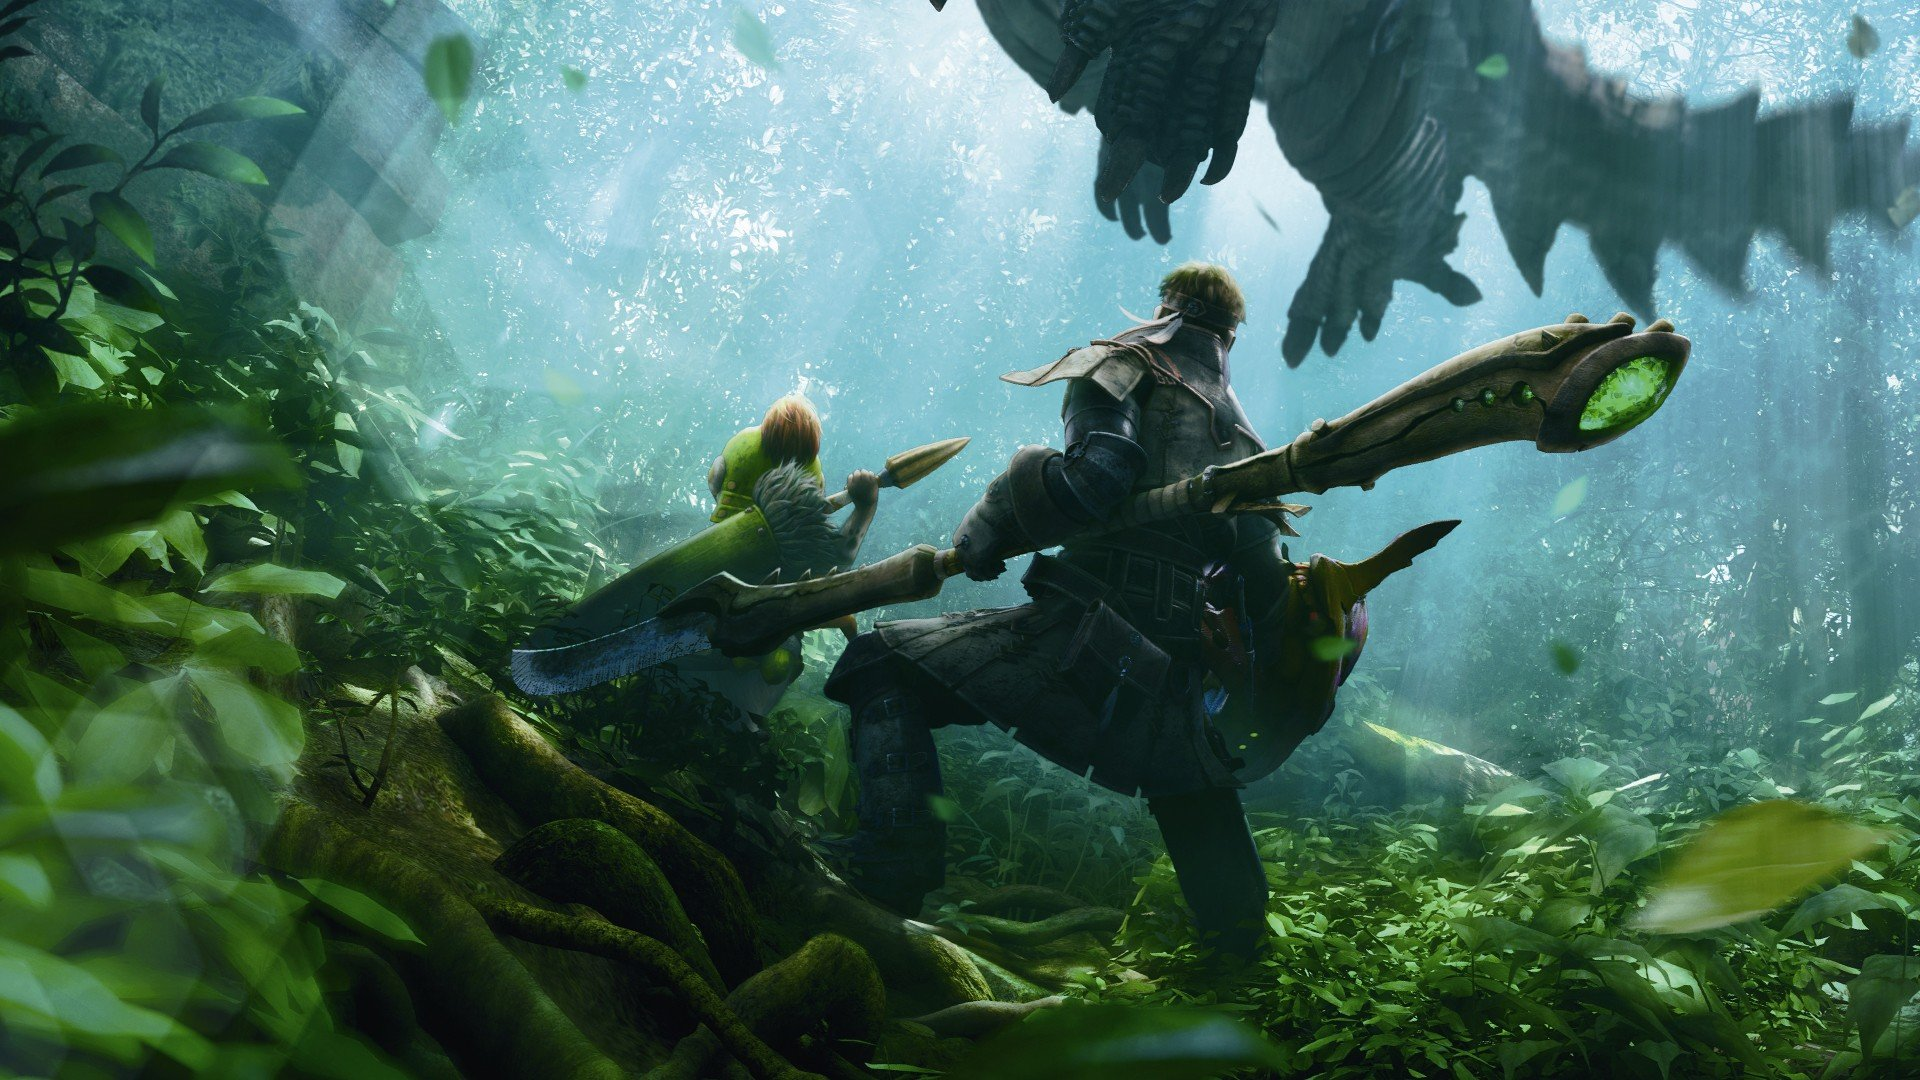 Free Download Monster Hunter 4 Ultimate 1920x1080 For Your